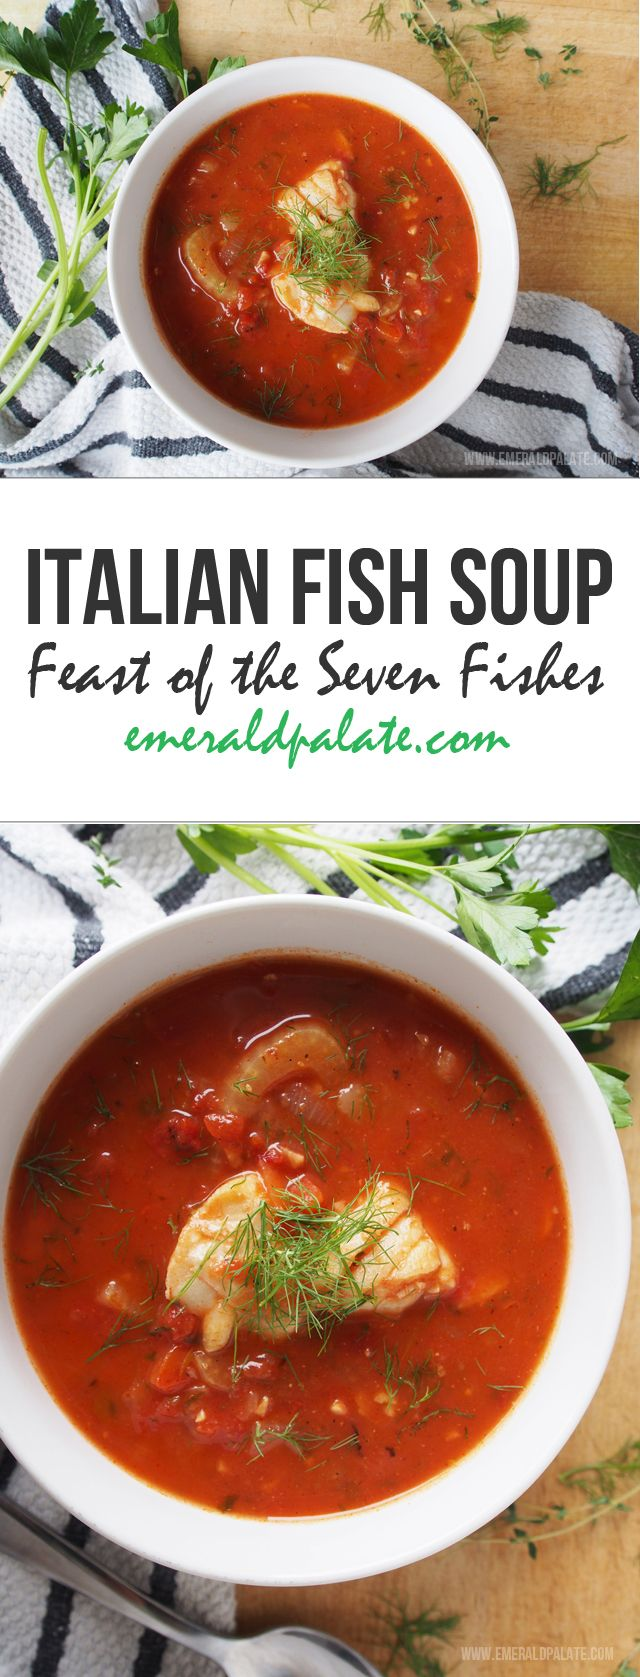 1000 images about healthy recipes on pinterest for Italian fish recipes